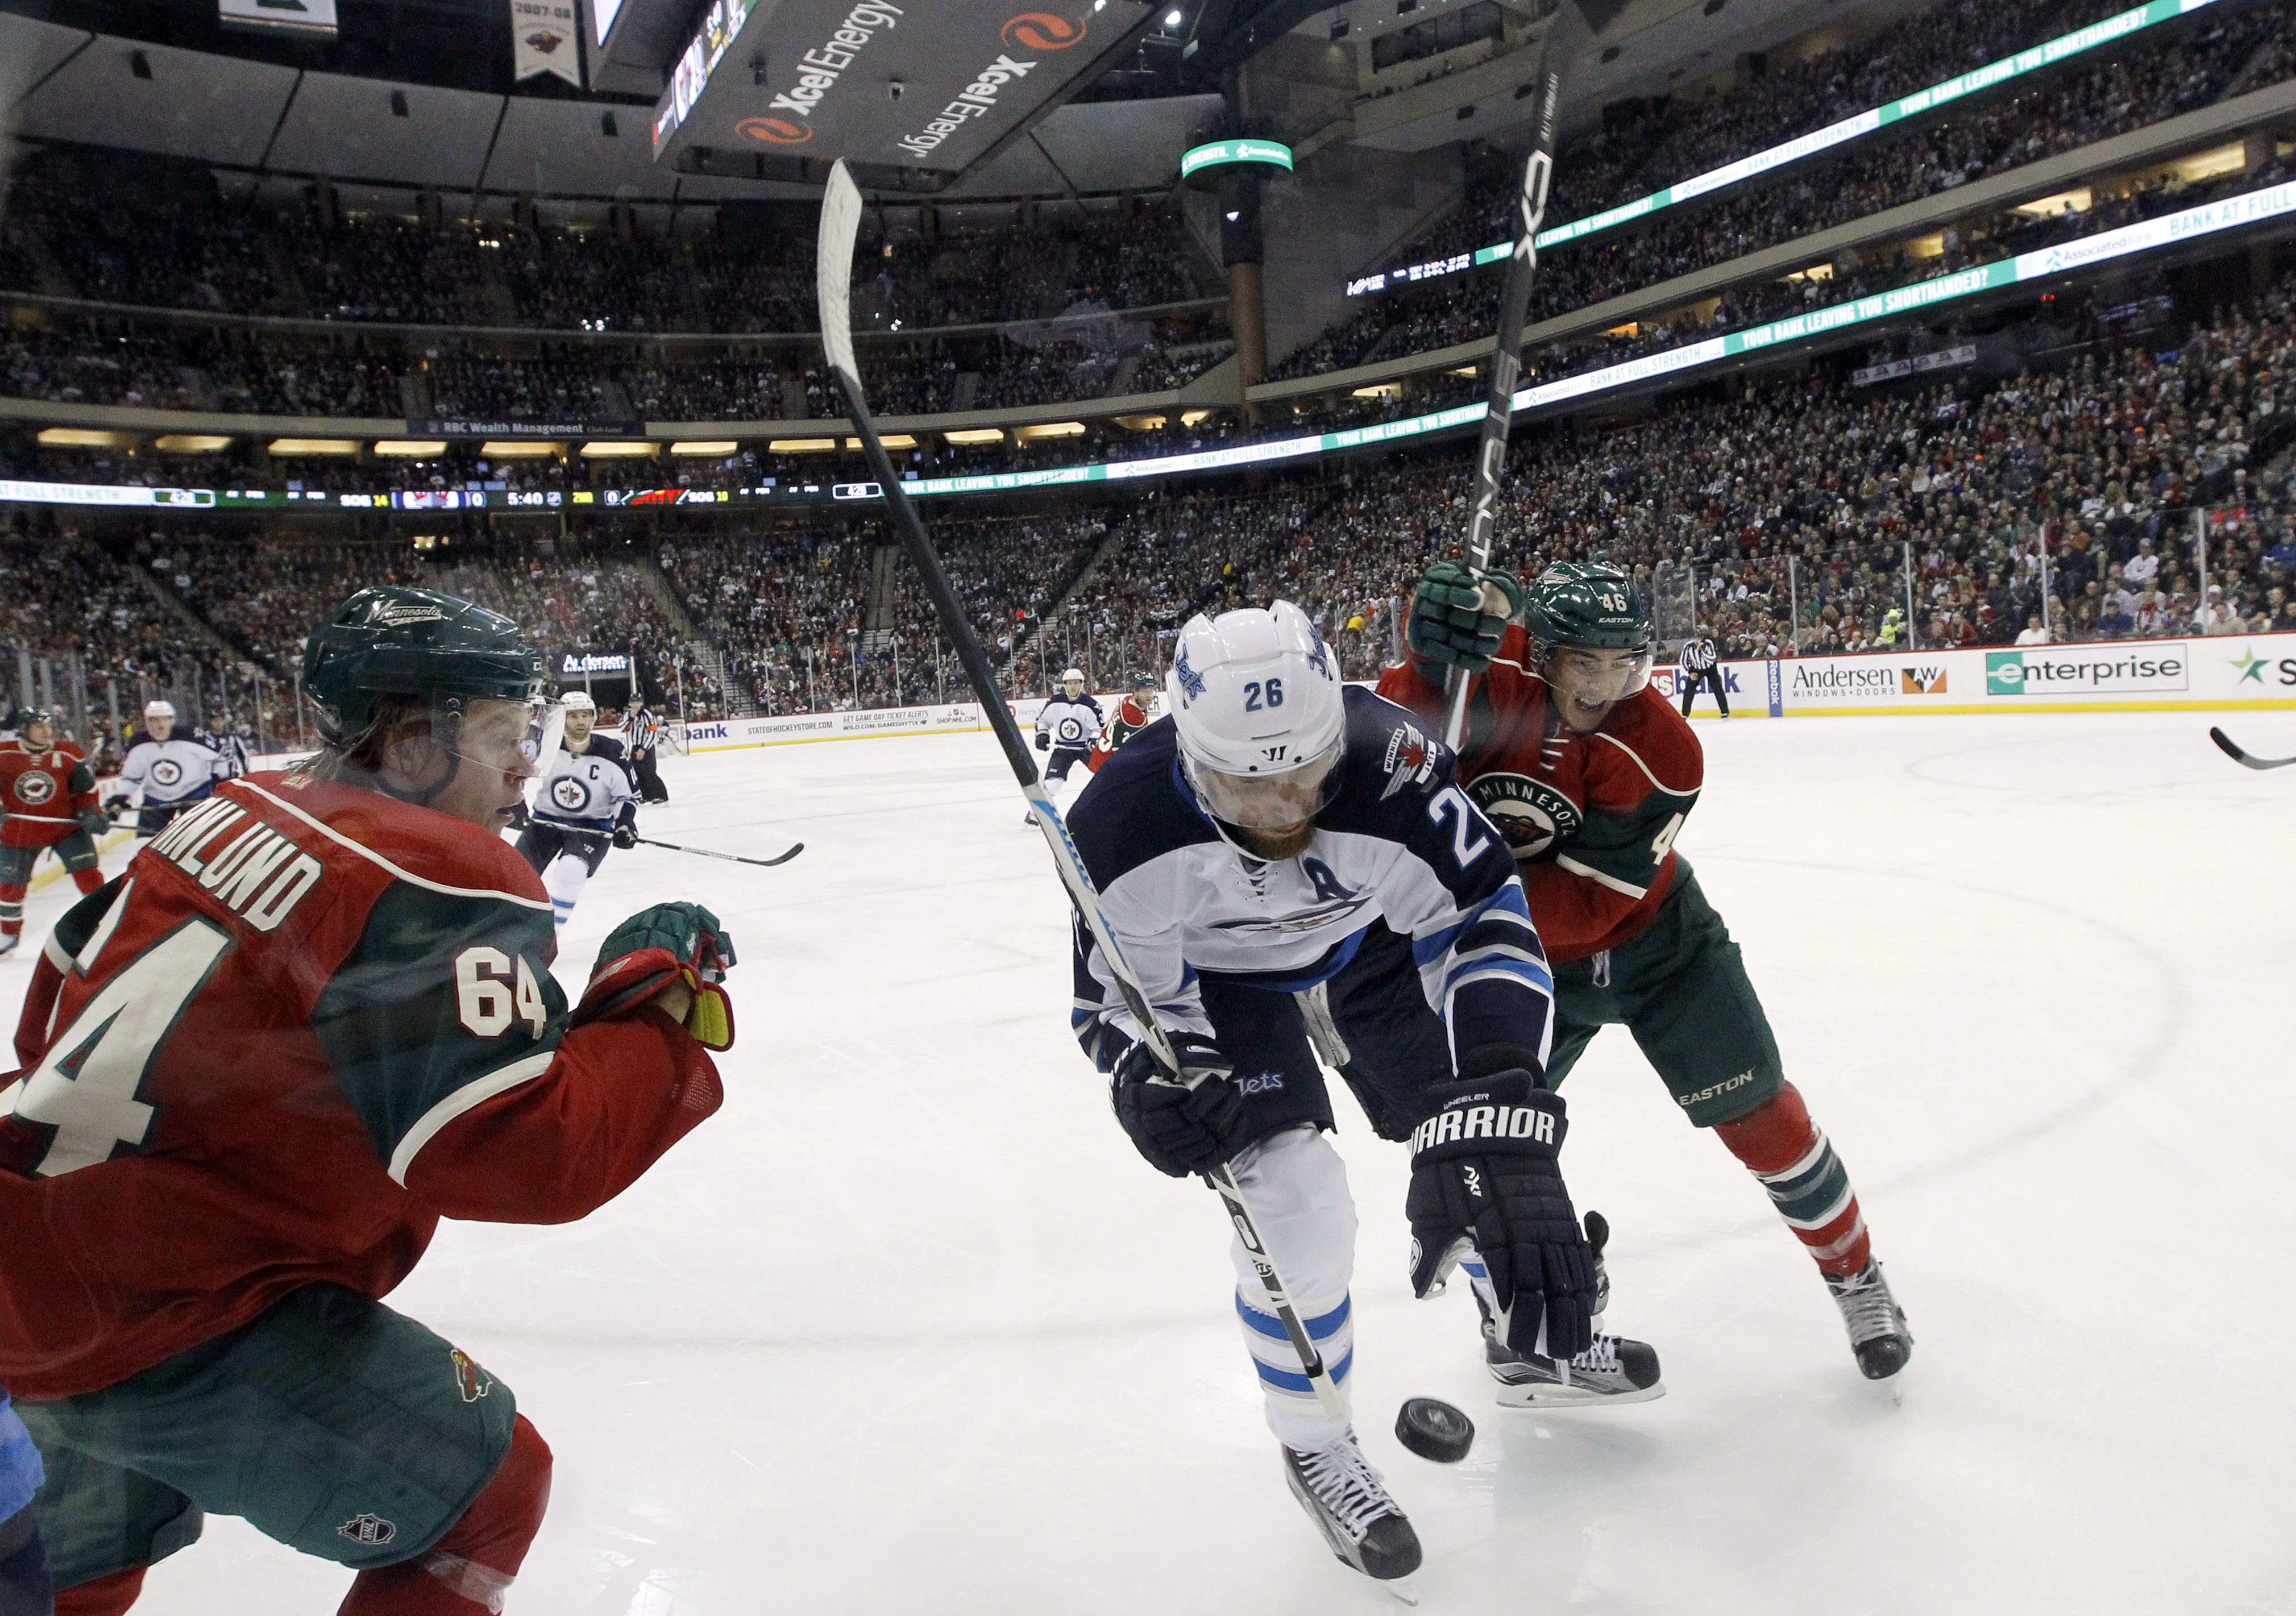 Winnipeg Jets right wing Blake Wheeler (26), Minnesota Wild defenseman Jared Spurgeon, right, and Wild center Mikael Granlund (64), of Finland, chase the puck during the second period of an NHL hockey game in St. Paul, Minn., Friday, Nov. 27, 2015. (AP Ph